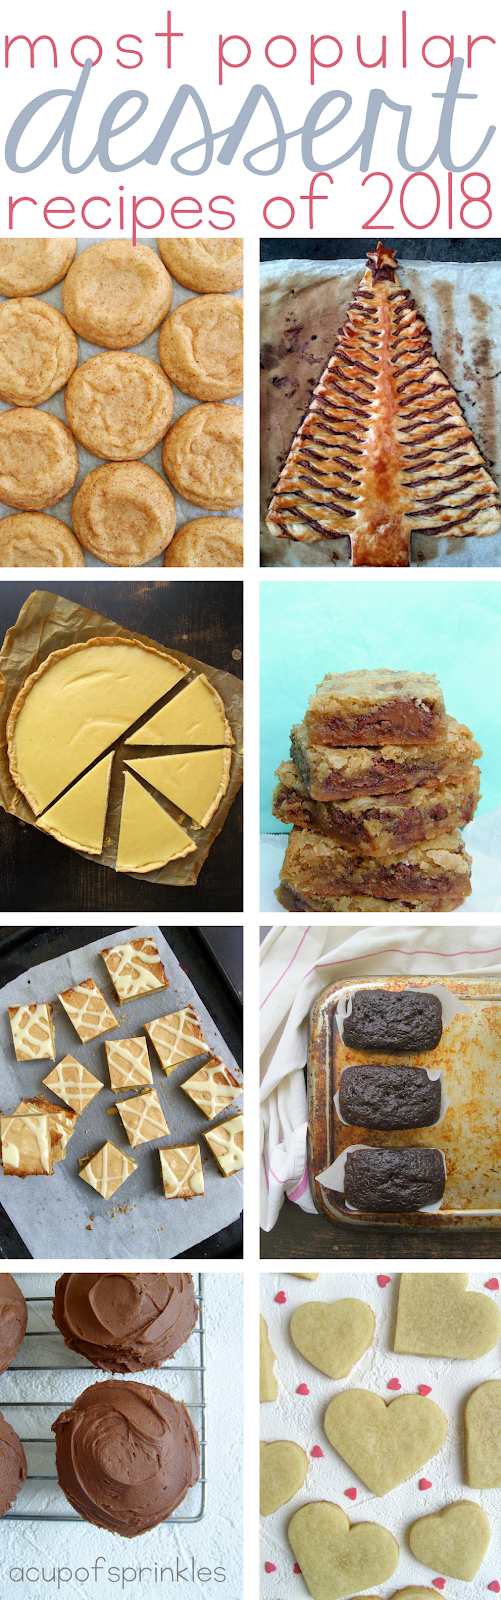 popular dessert recipes